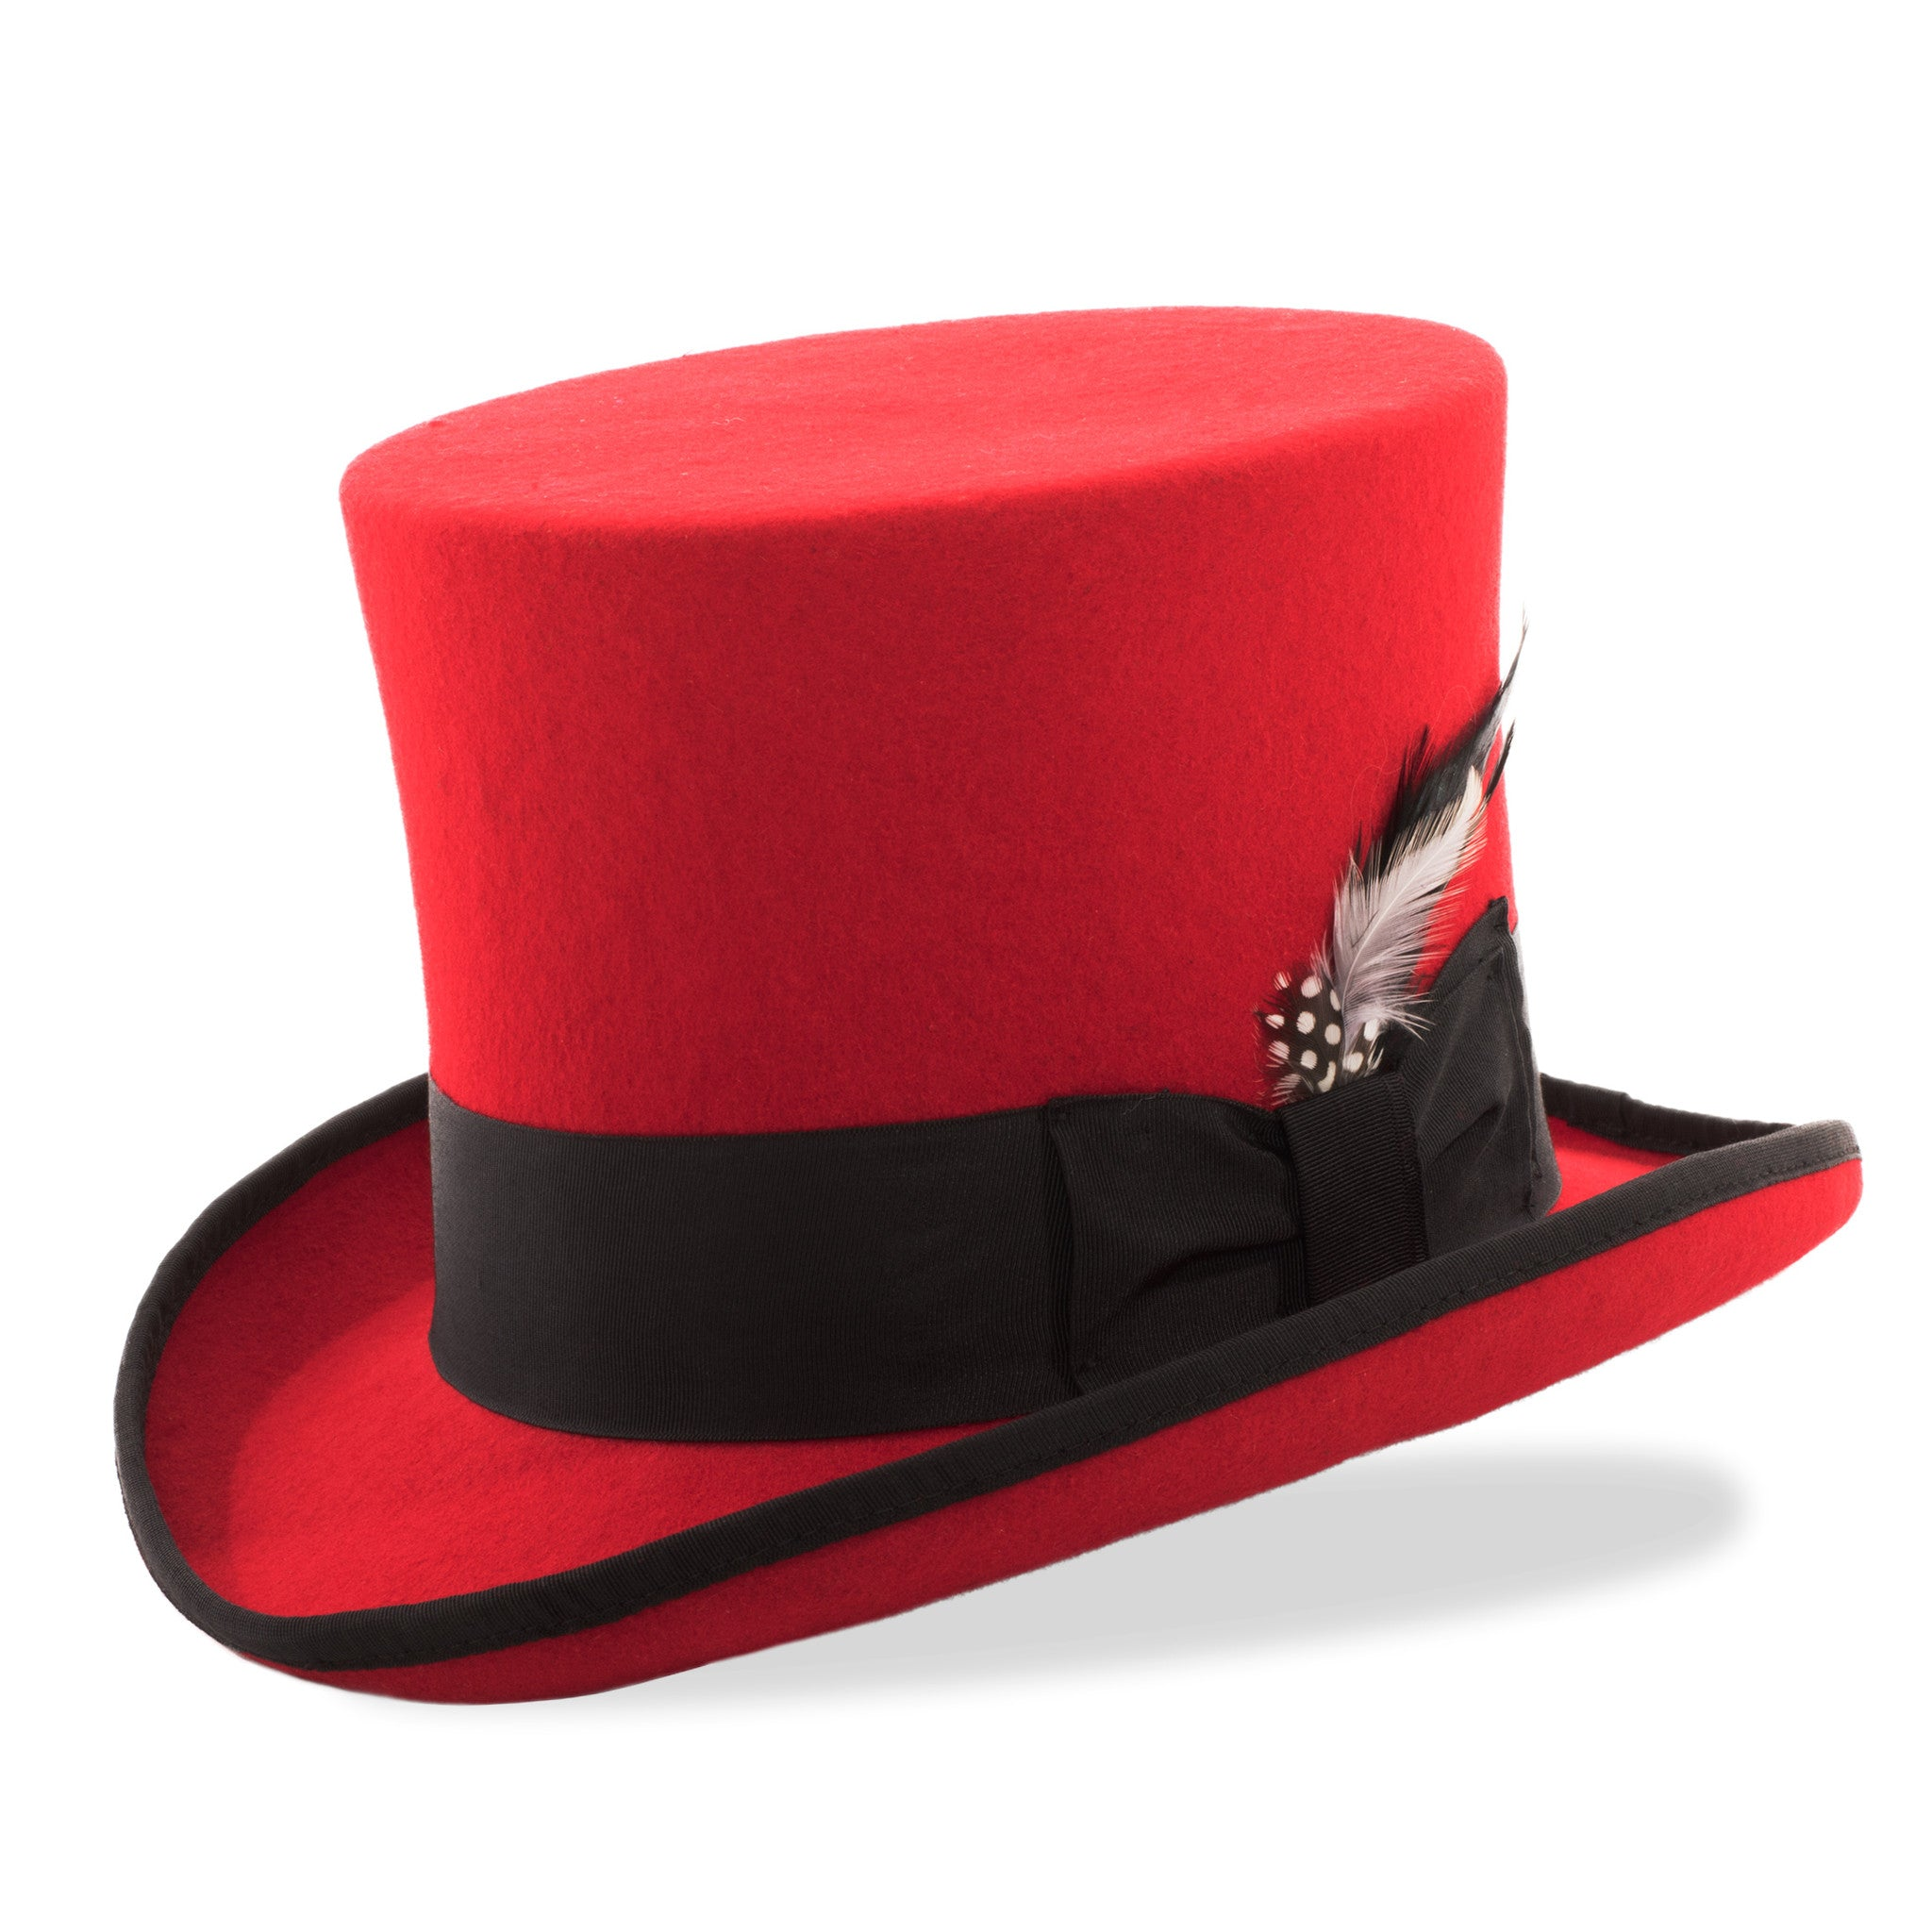 ferrecci unisex premium wool felt red black top hat